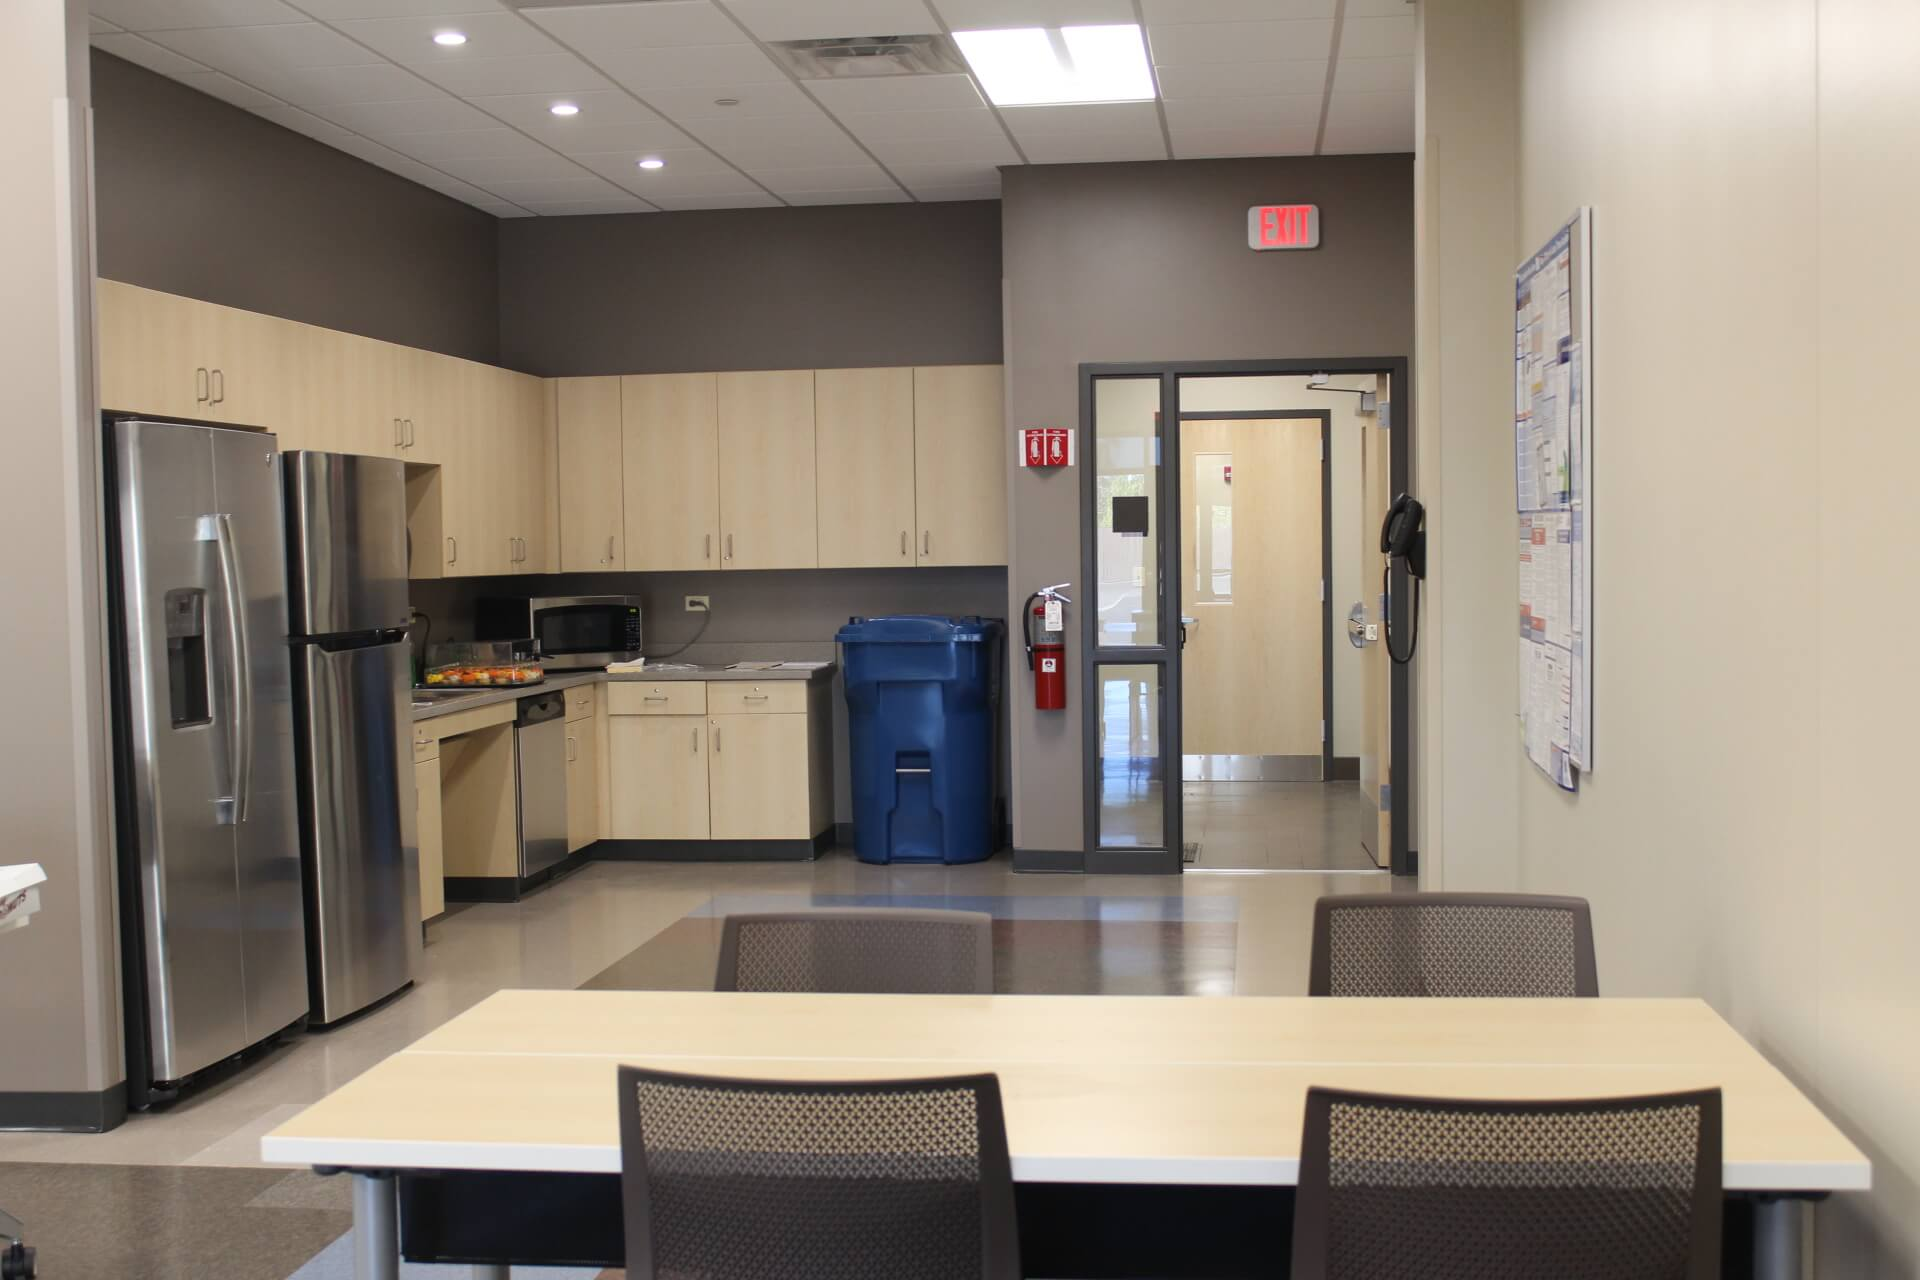 South Elgin Public Works facility completed on time and